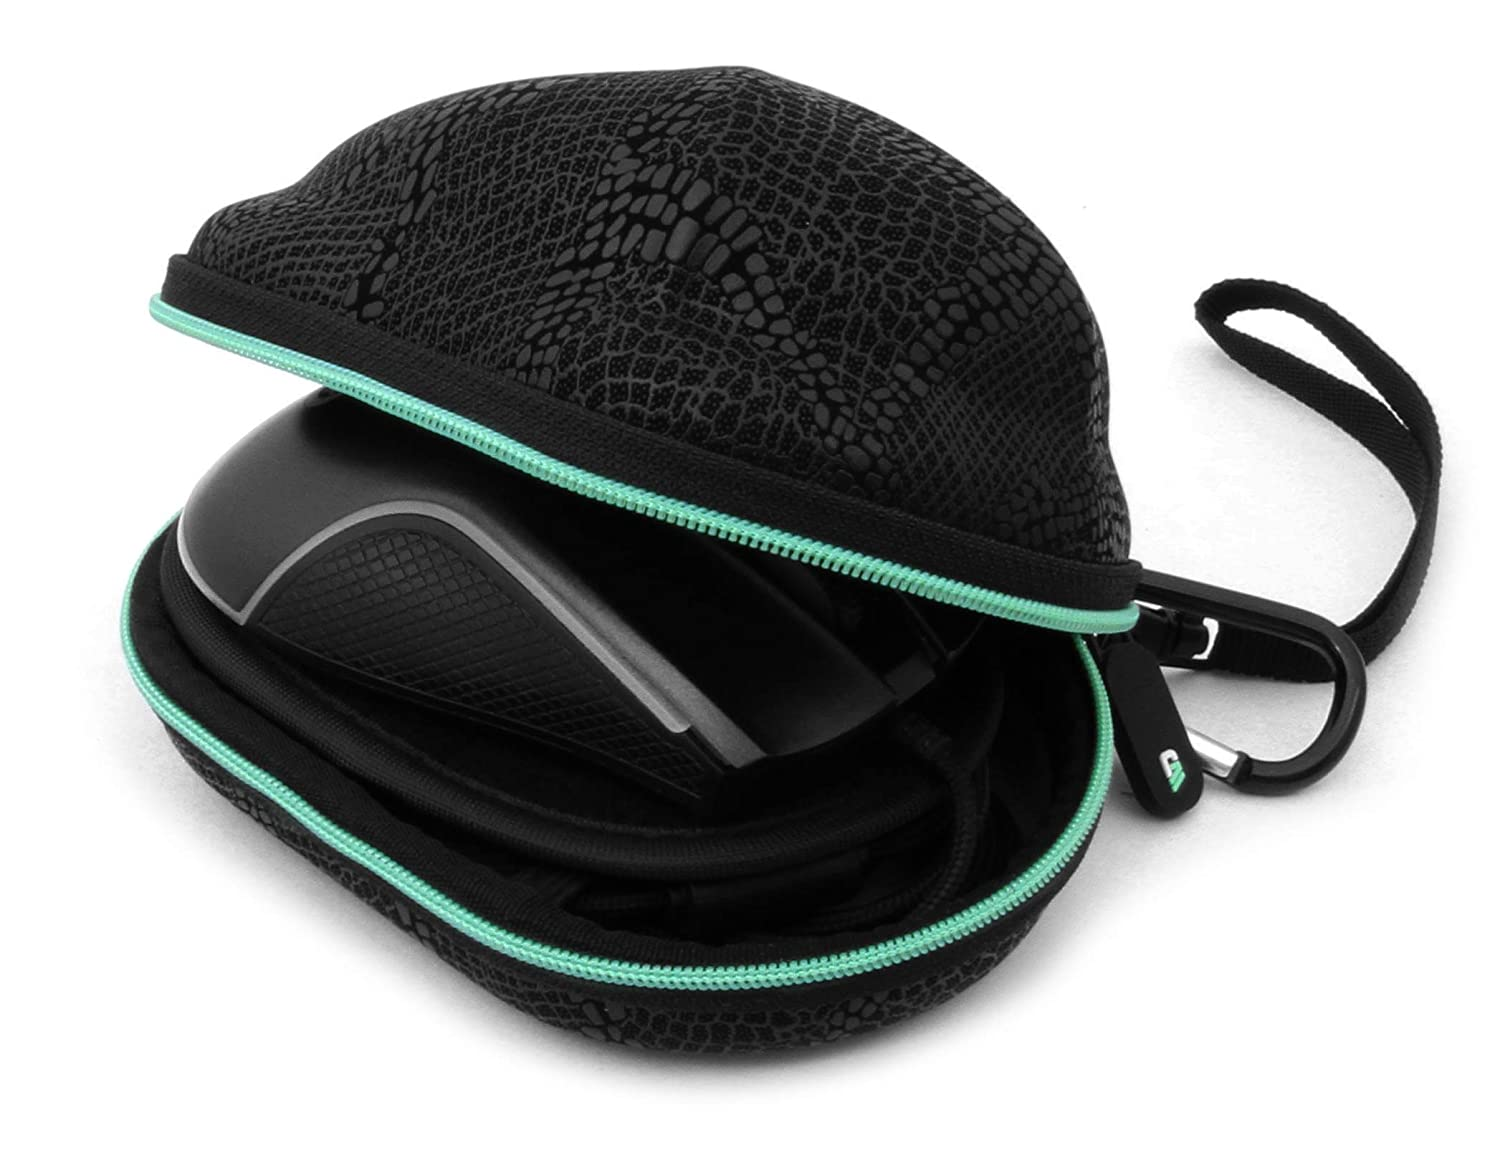 Casematix Sleek Molded Mouse Case Compatible with Razer DeathAdder Elite Gaming Mouse, Viper and More Razer Mouse Models, Does Not Include Computer Gaming Mouse